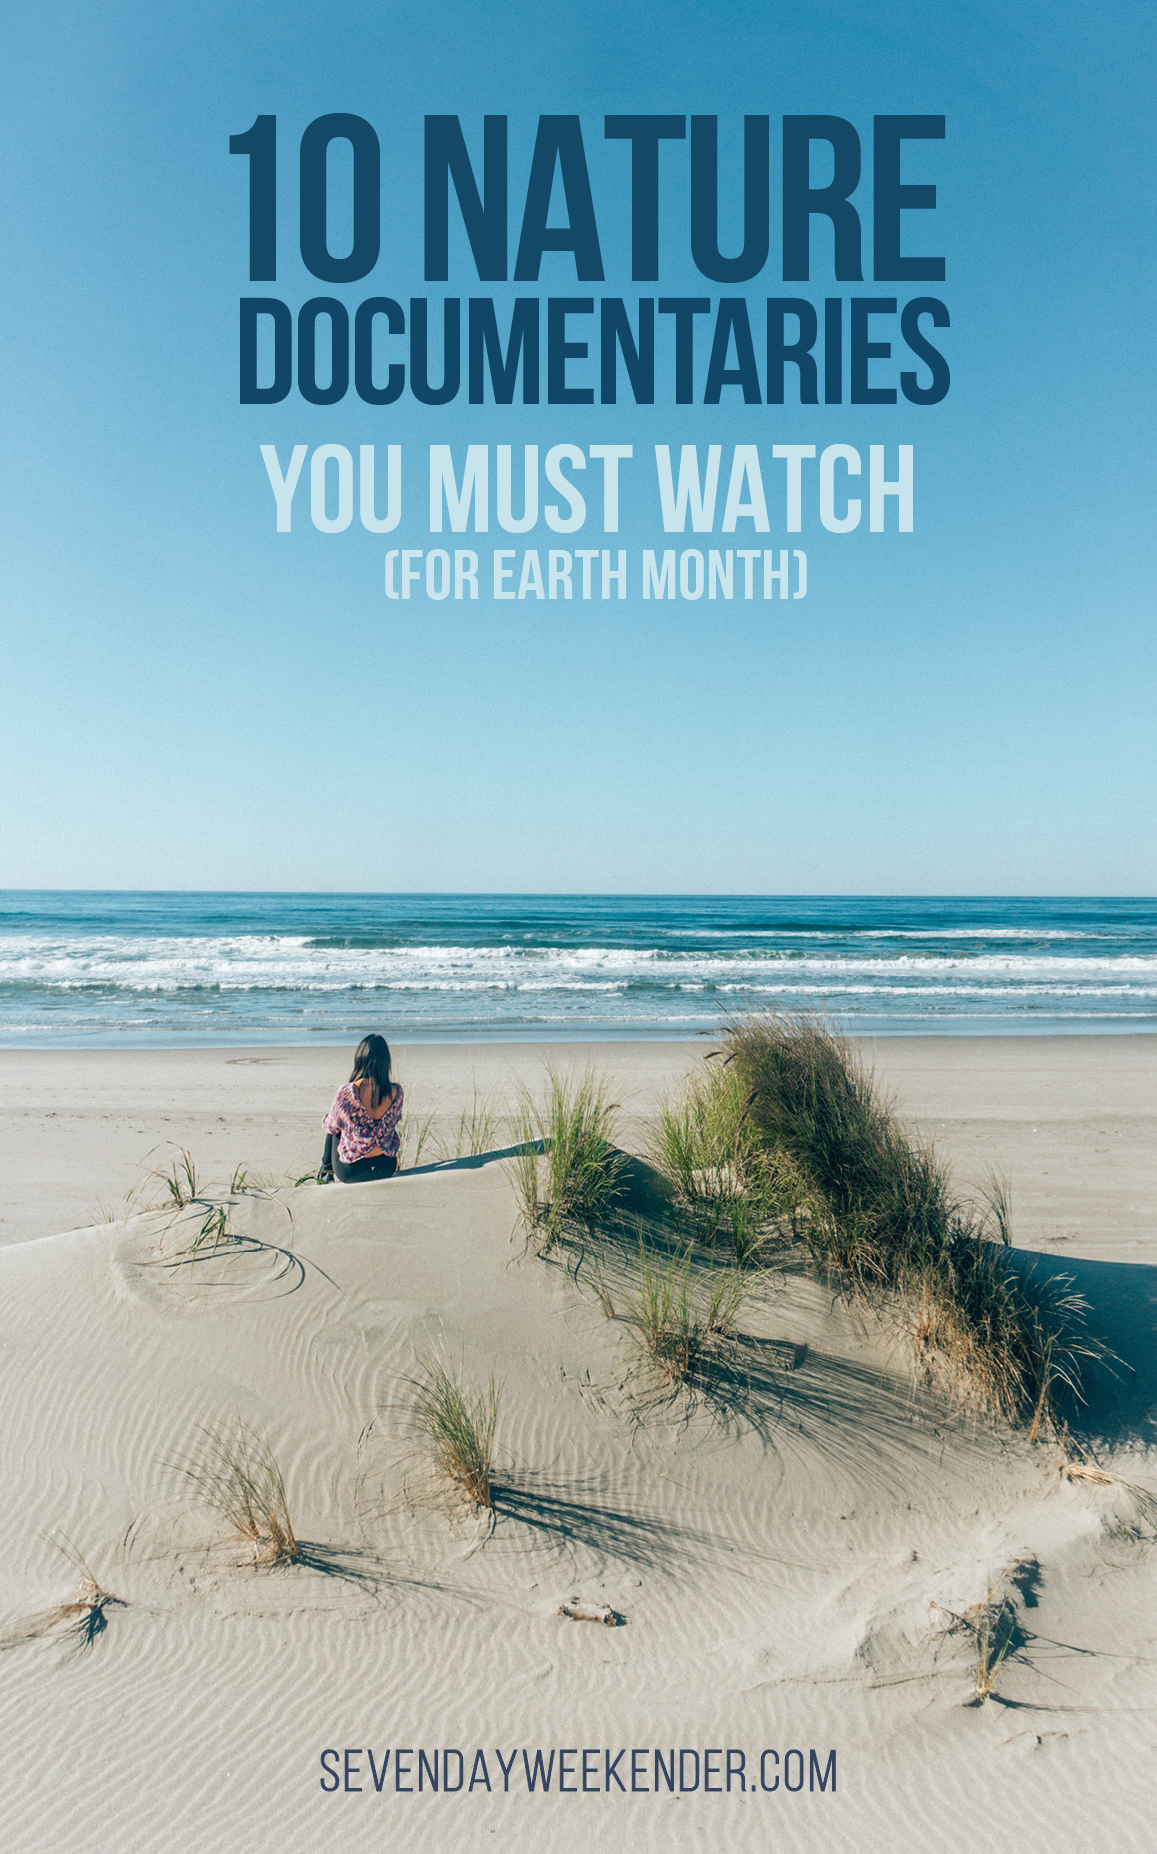 10 Nature Documentaries to watch for Earth Month